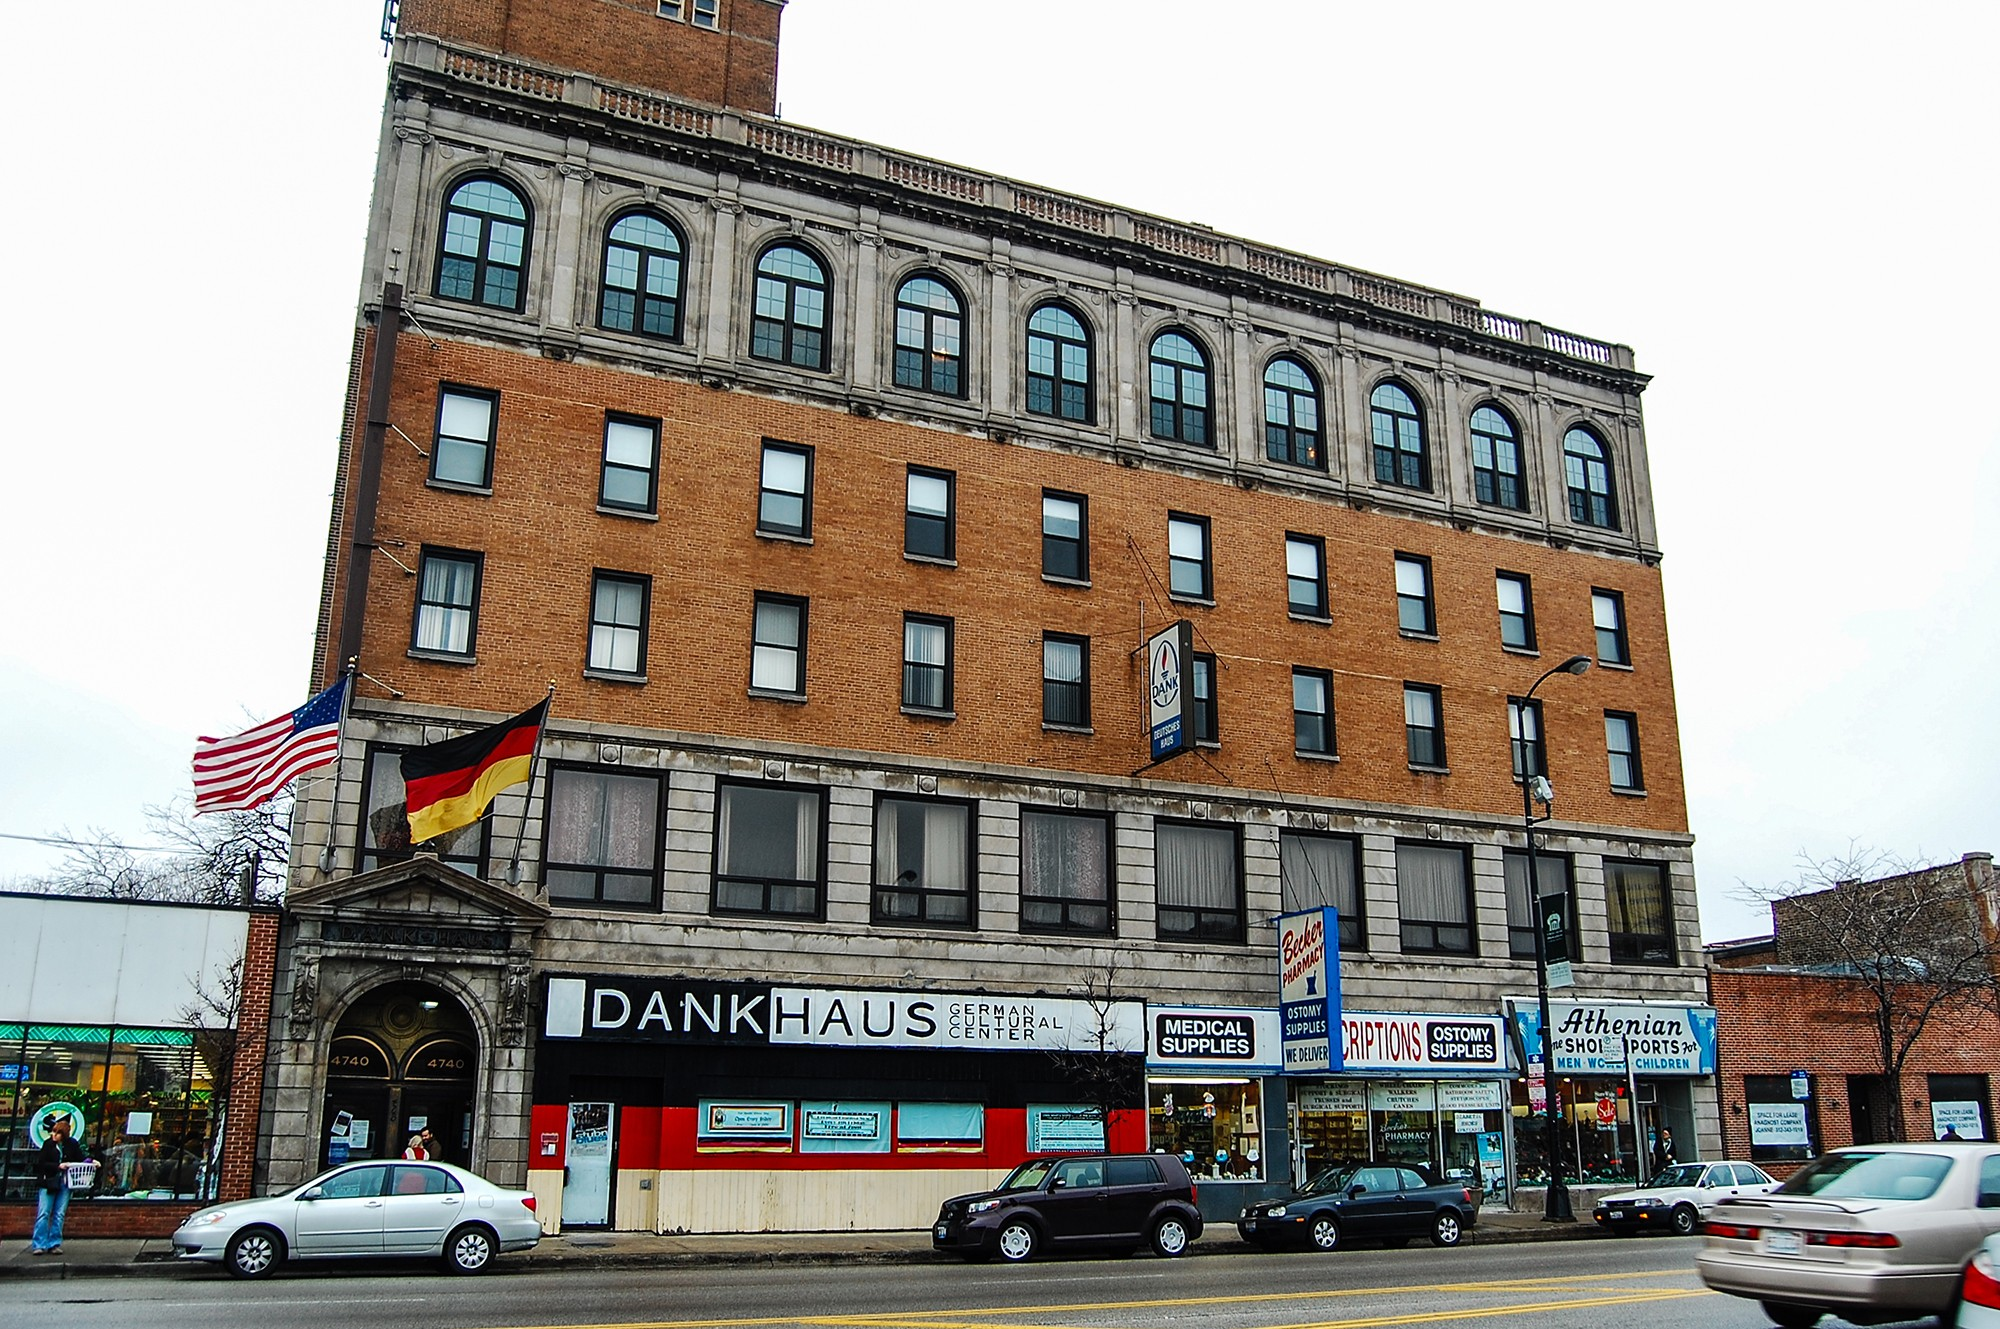 DANK Haus has occupied this building in Lincoln Square since 1967. Before that it was home to a fraternal organization. Image obtained from Open House Chicago.